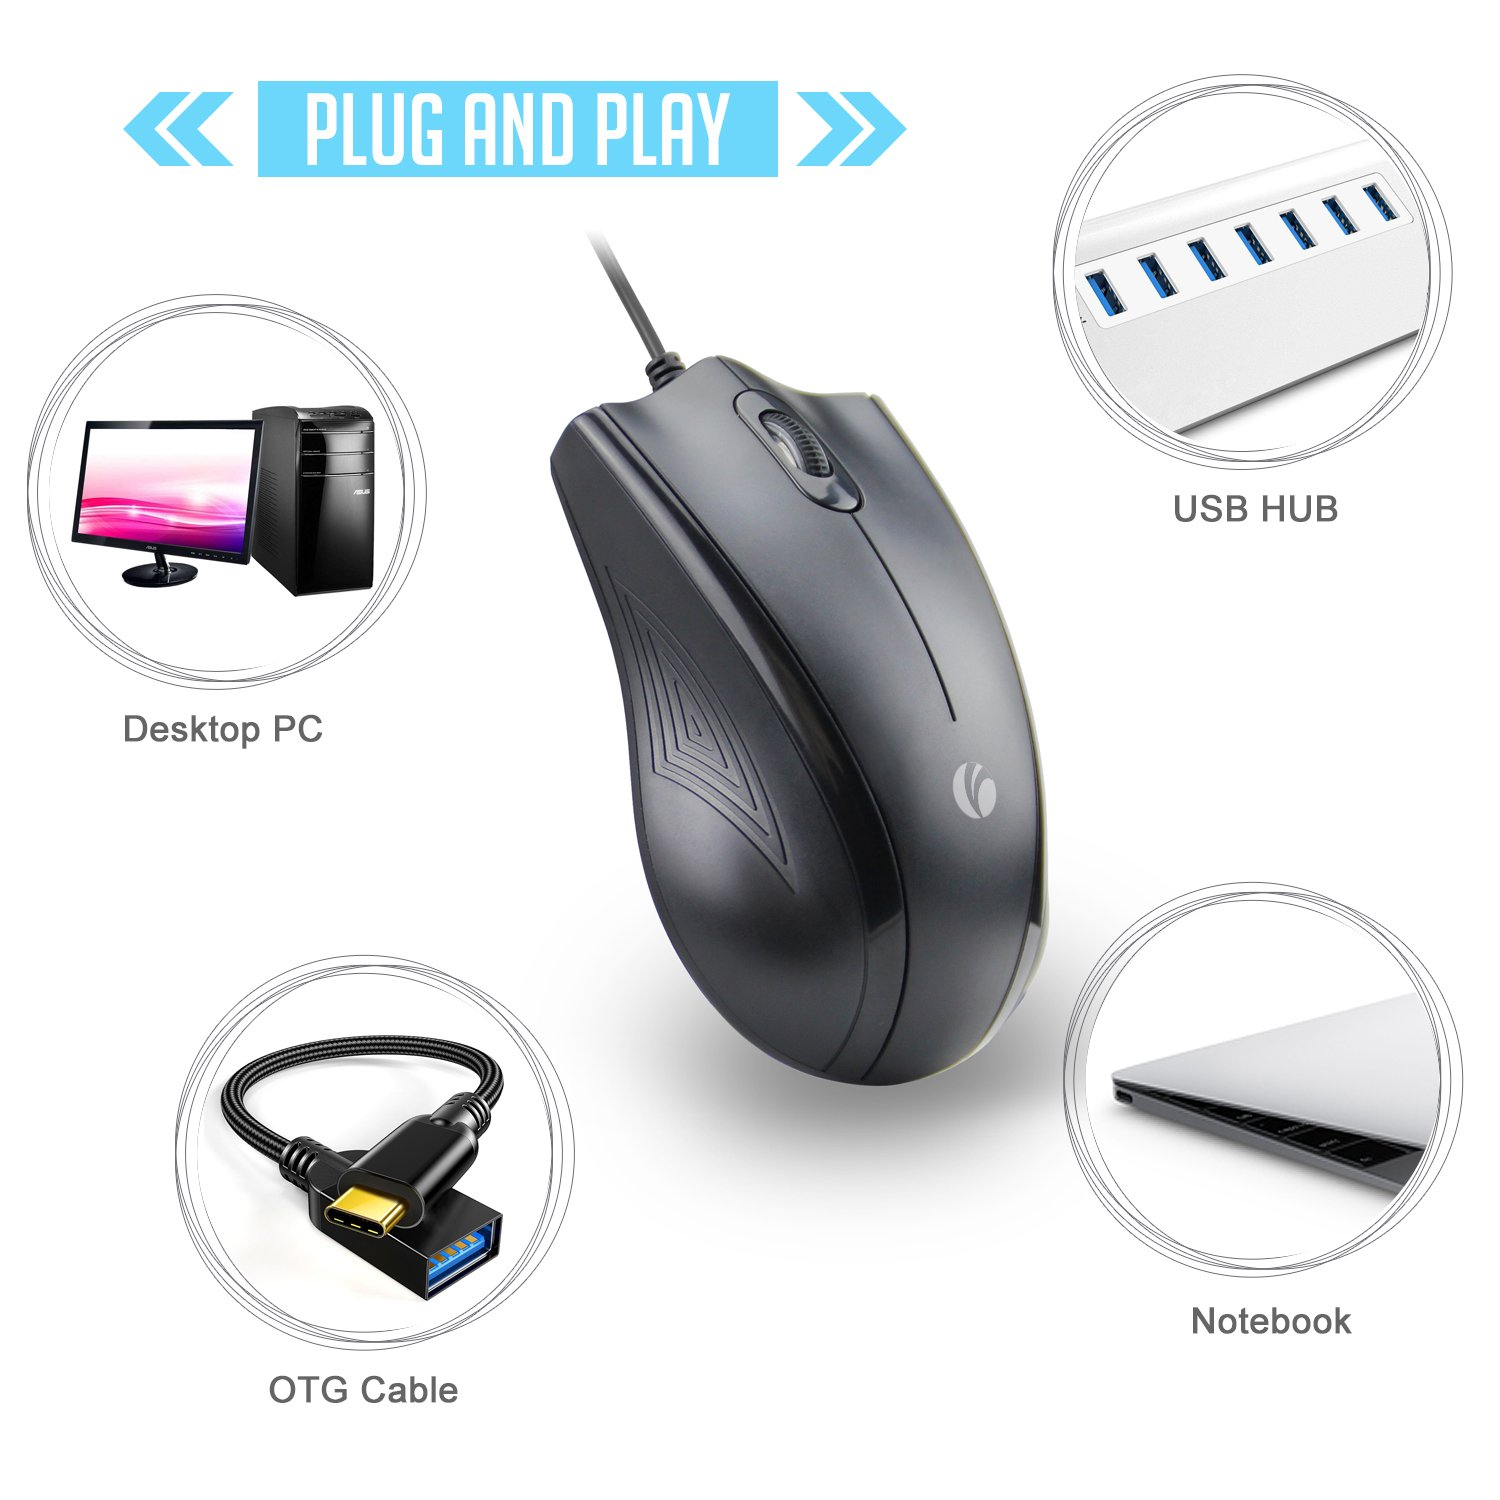 c4391f99157 Amazon.com: VCOM 3-Button USB Wired Mouse, Ergonomic Design Comfortable  Computer Mice 6.9ft Long Cord with 1200 DPI Compatible for Windows PC  Laptops ...